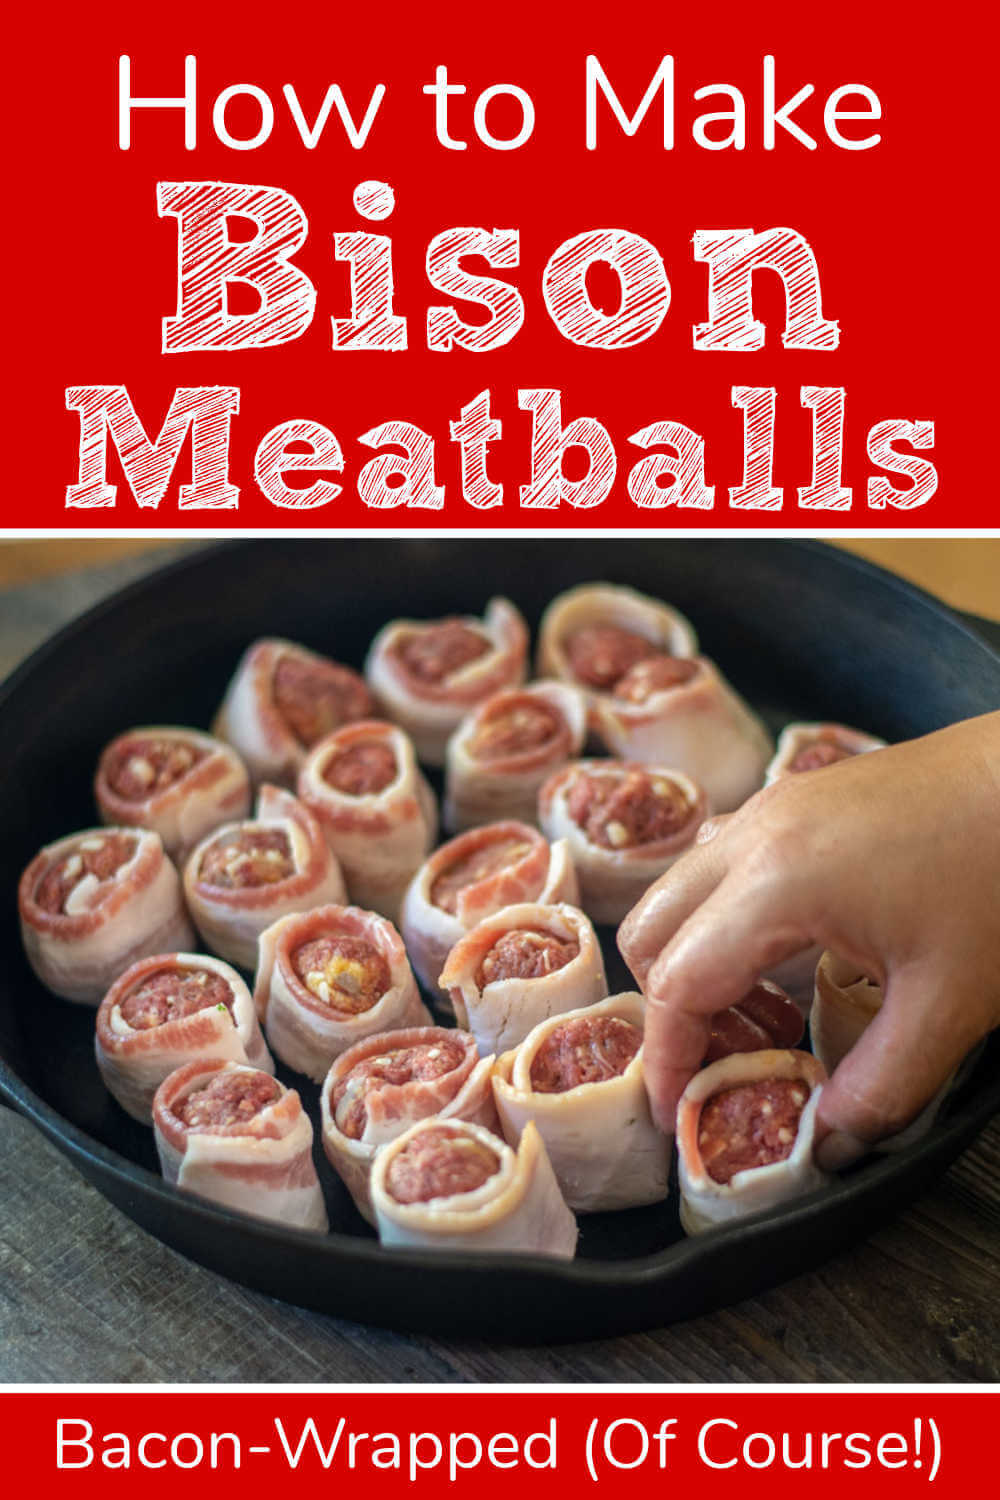 Bacon Wrapped Grilled Bison Meatballs